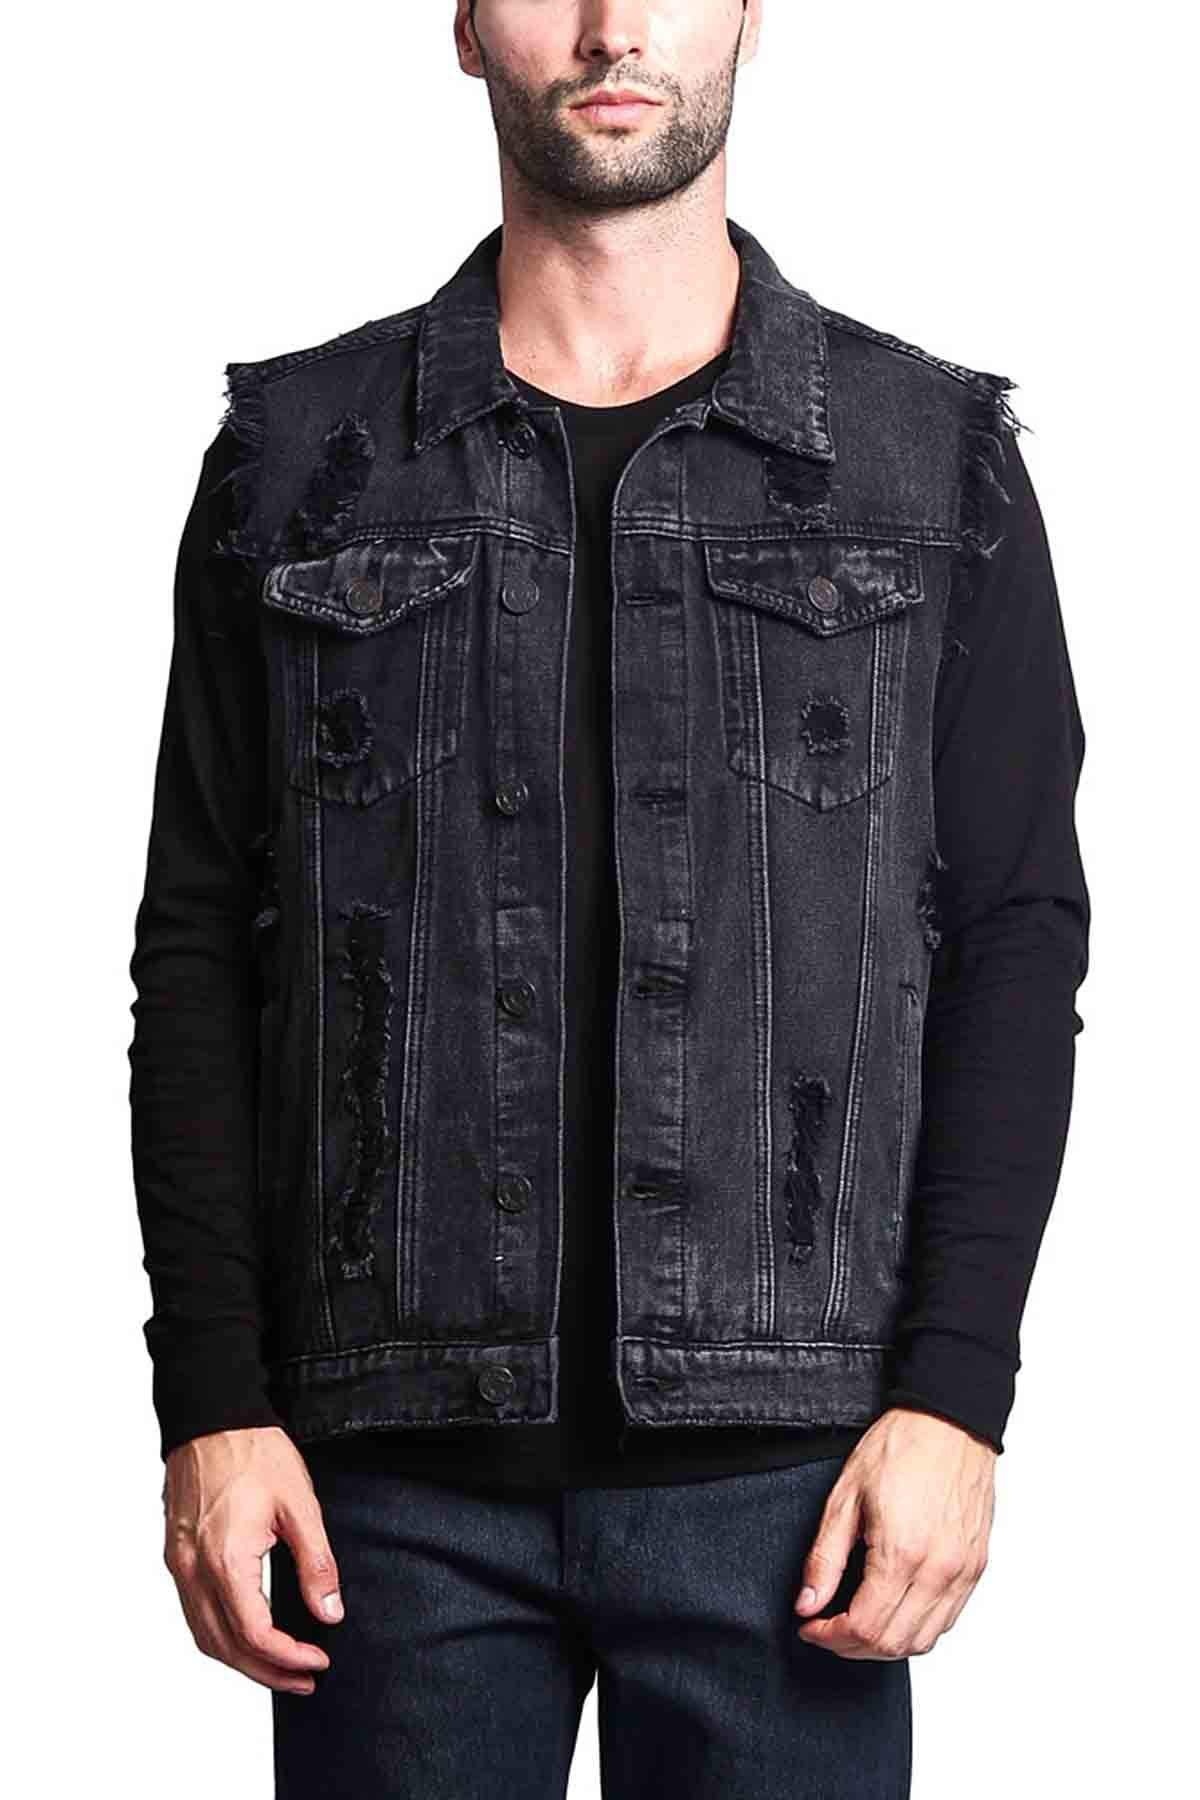 Victorious Distressed Denim Jean Vest Jacket DK101 - Classic Black - 2X-Large - A3G by Victorious